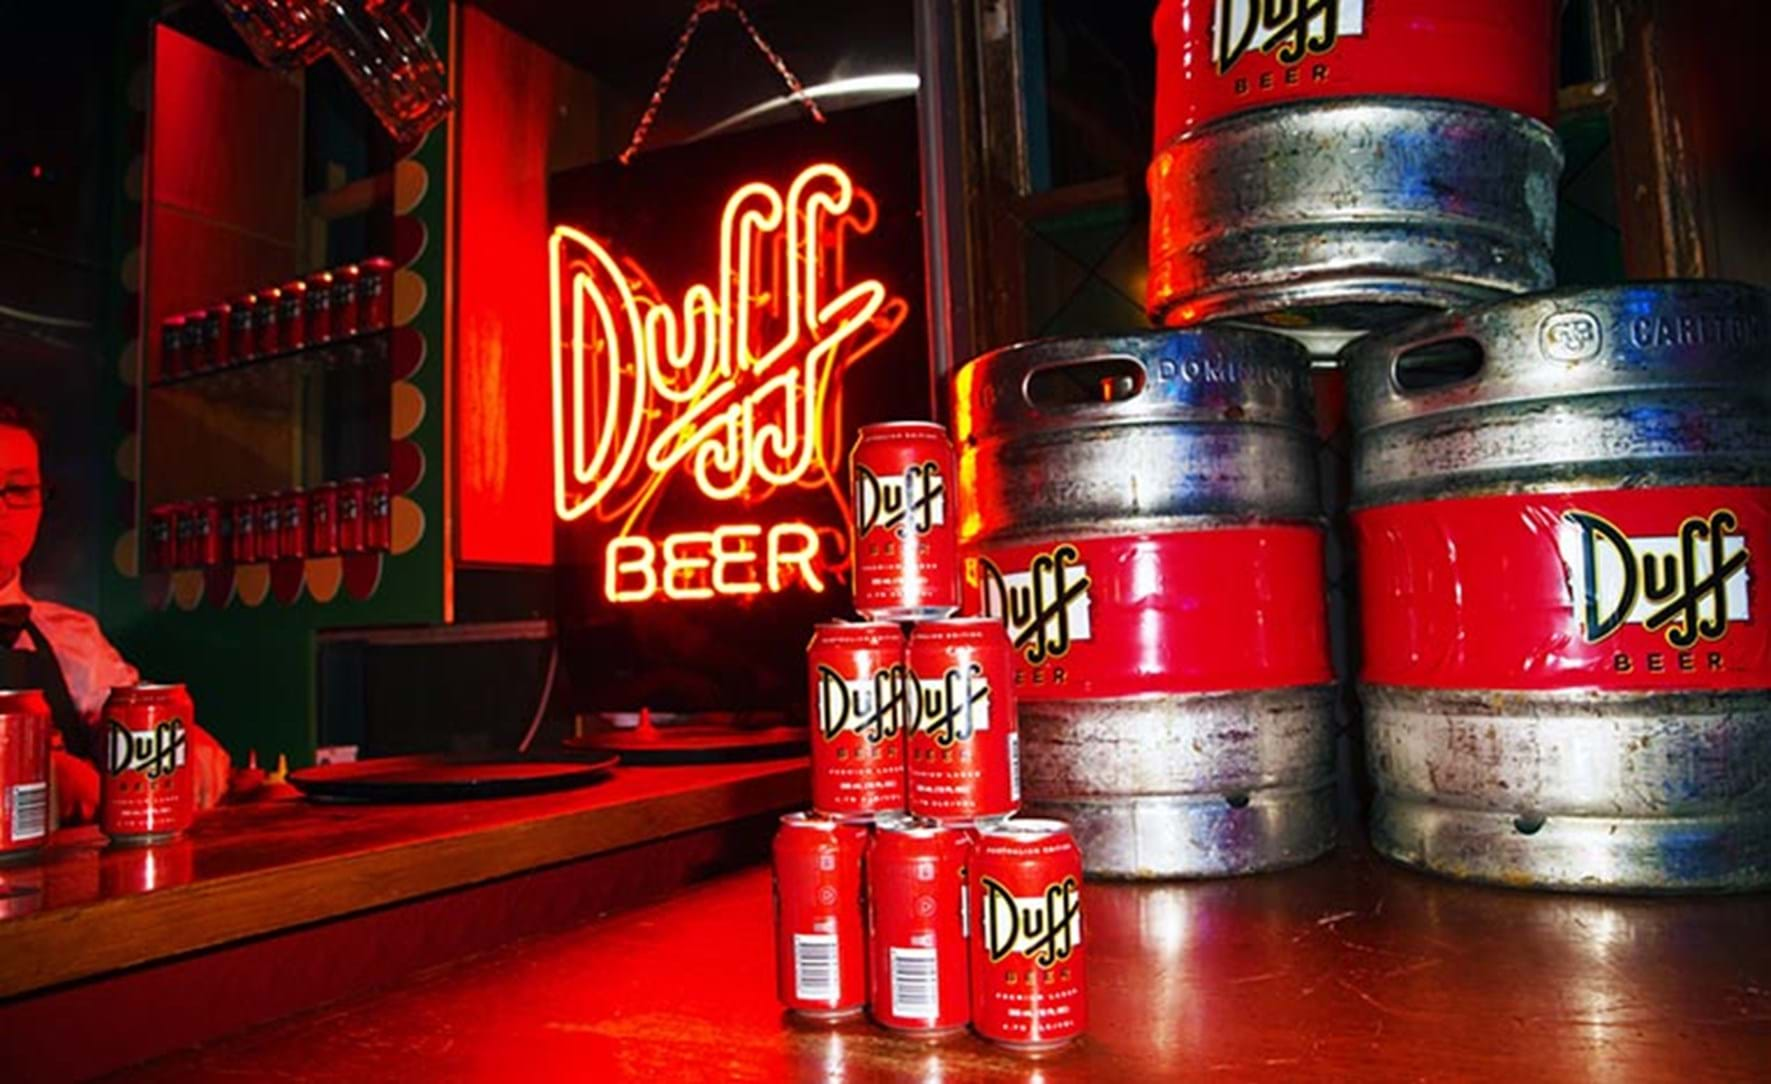 Duff Beer - The Simpsons